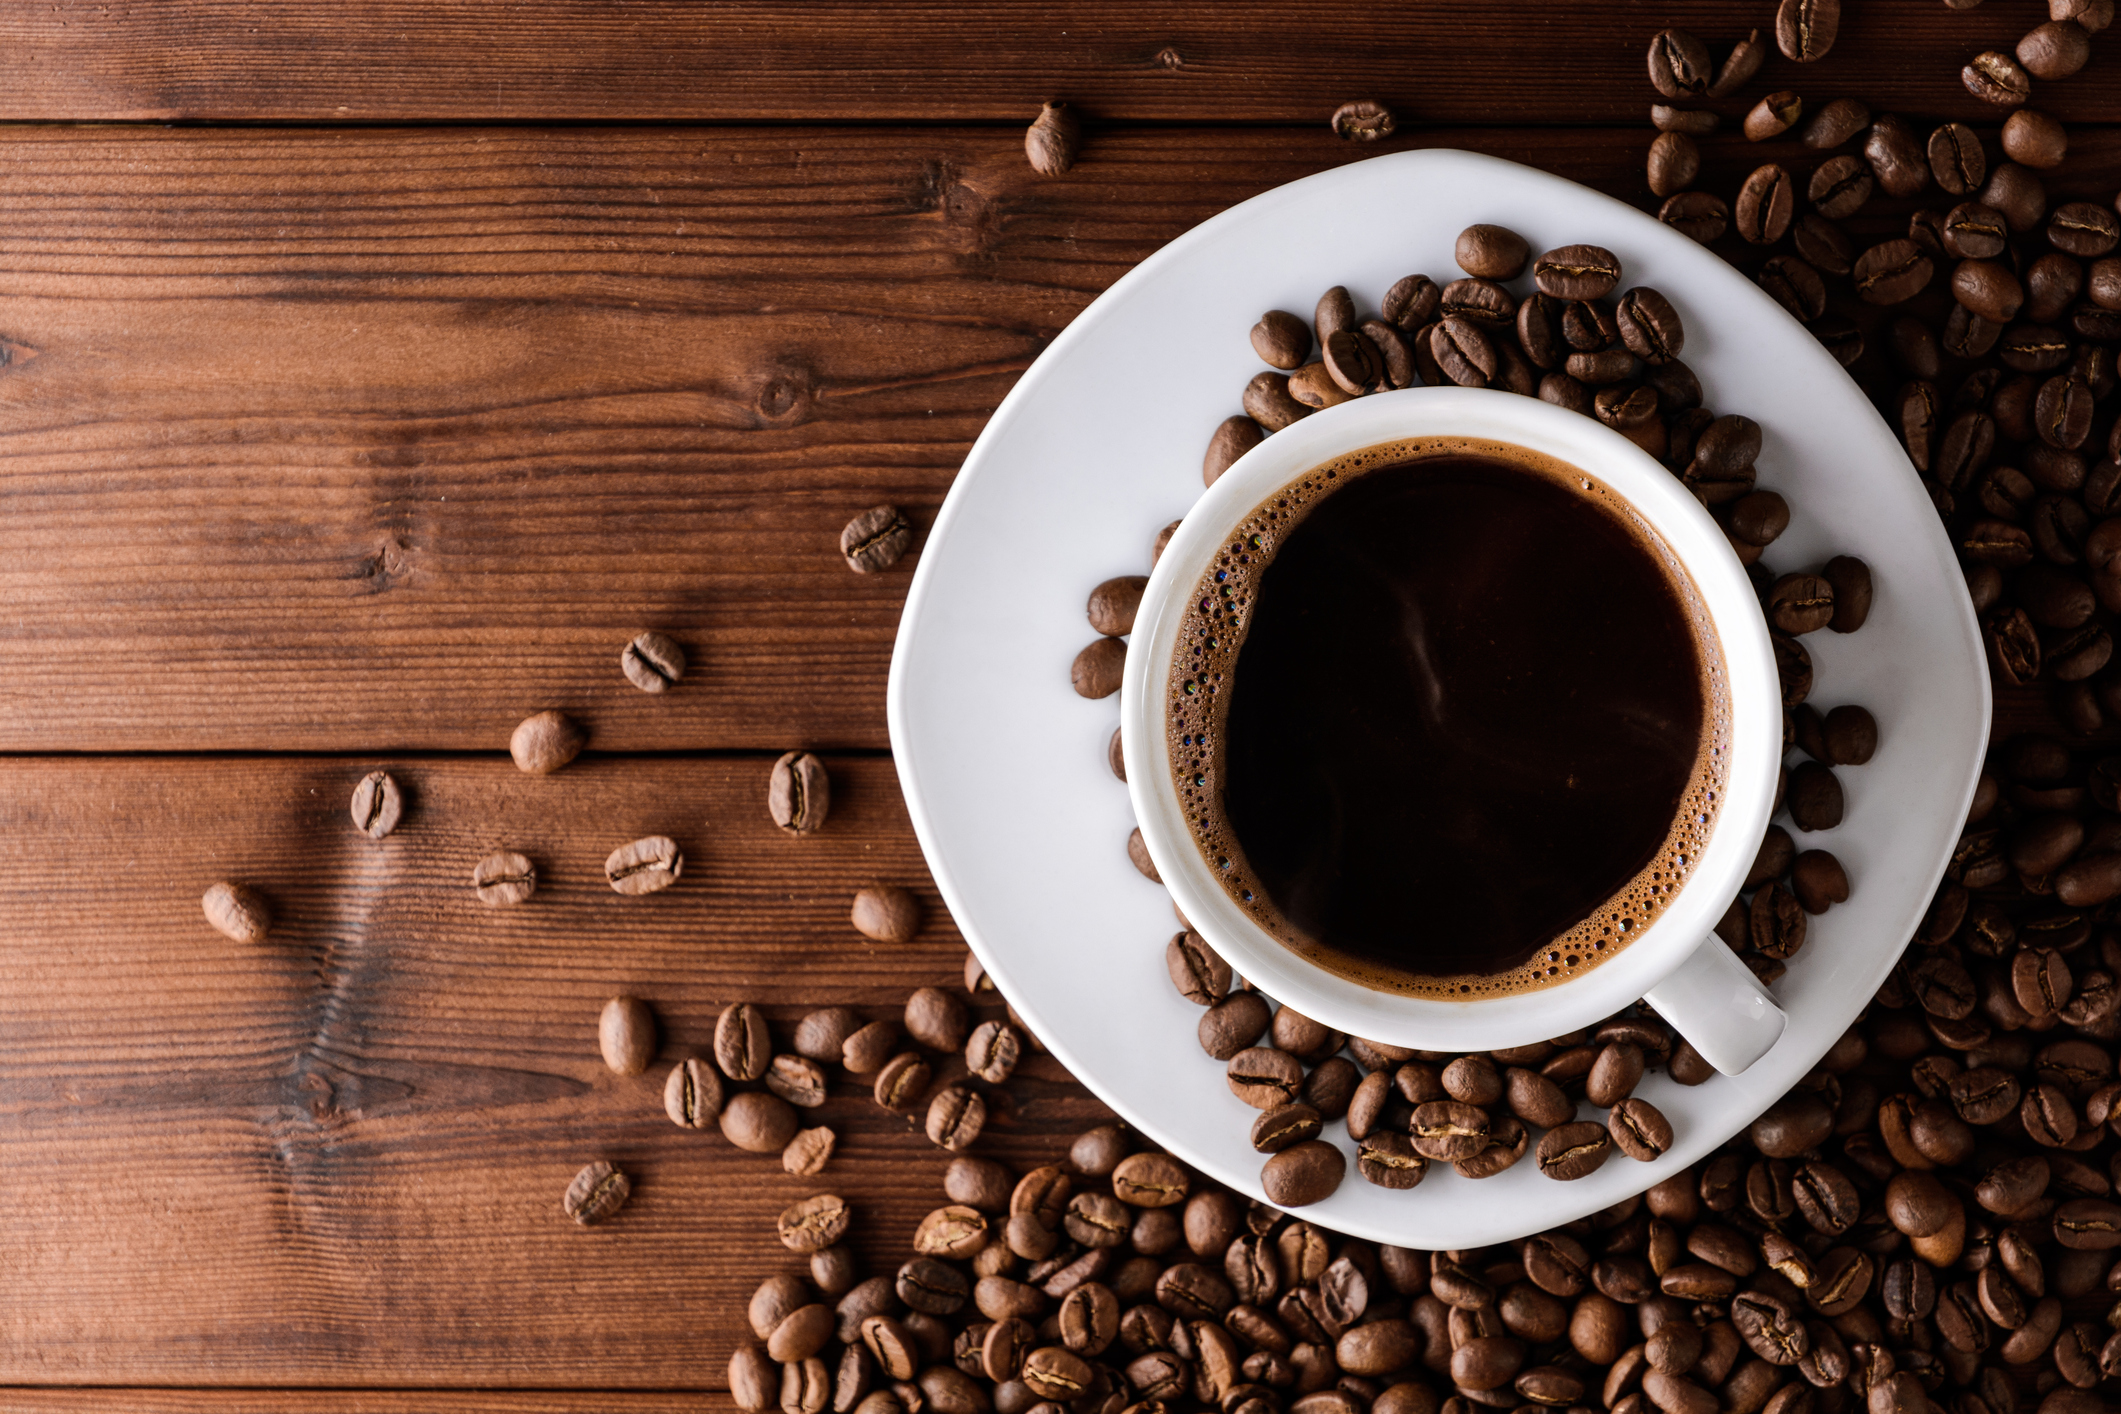 Health benefits of coffee and a proposed warning label - Harvard Health Blog - Harvard Health Publishing